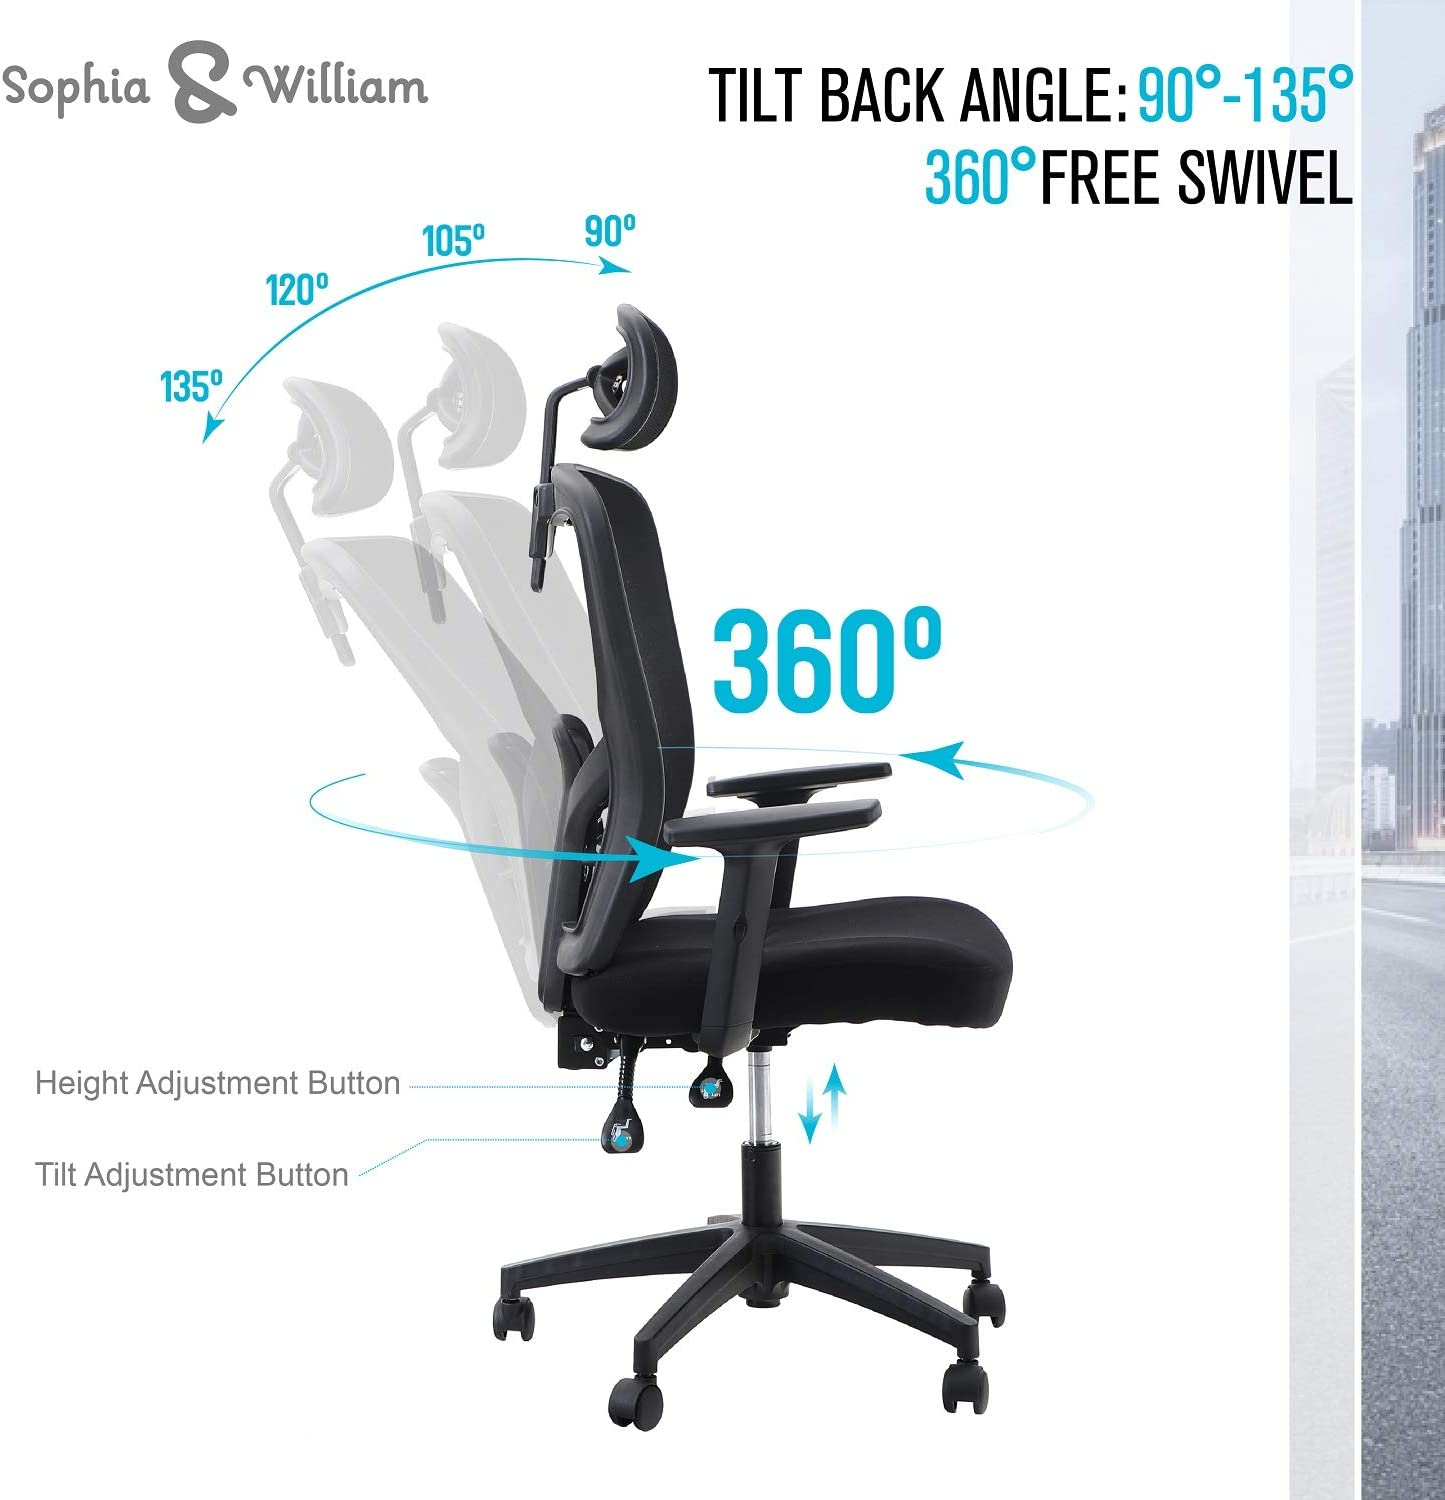 Lumbar Support and Headrest Load Capacity: 300 lbs Sophia /& William Ergonomic Mesh Office Desk Chair High Back Black Modern 360/° Swivel Executive Computer Chair with Height Adjustable Armrests